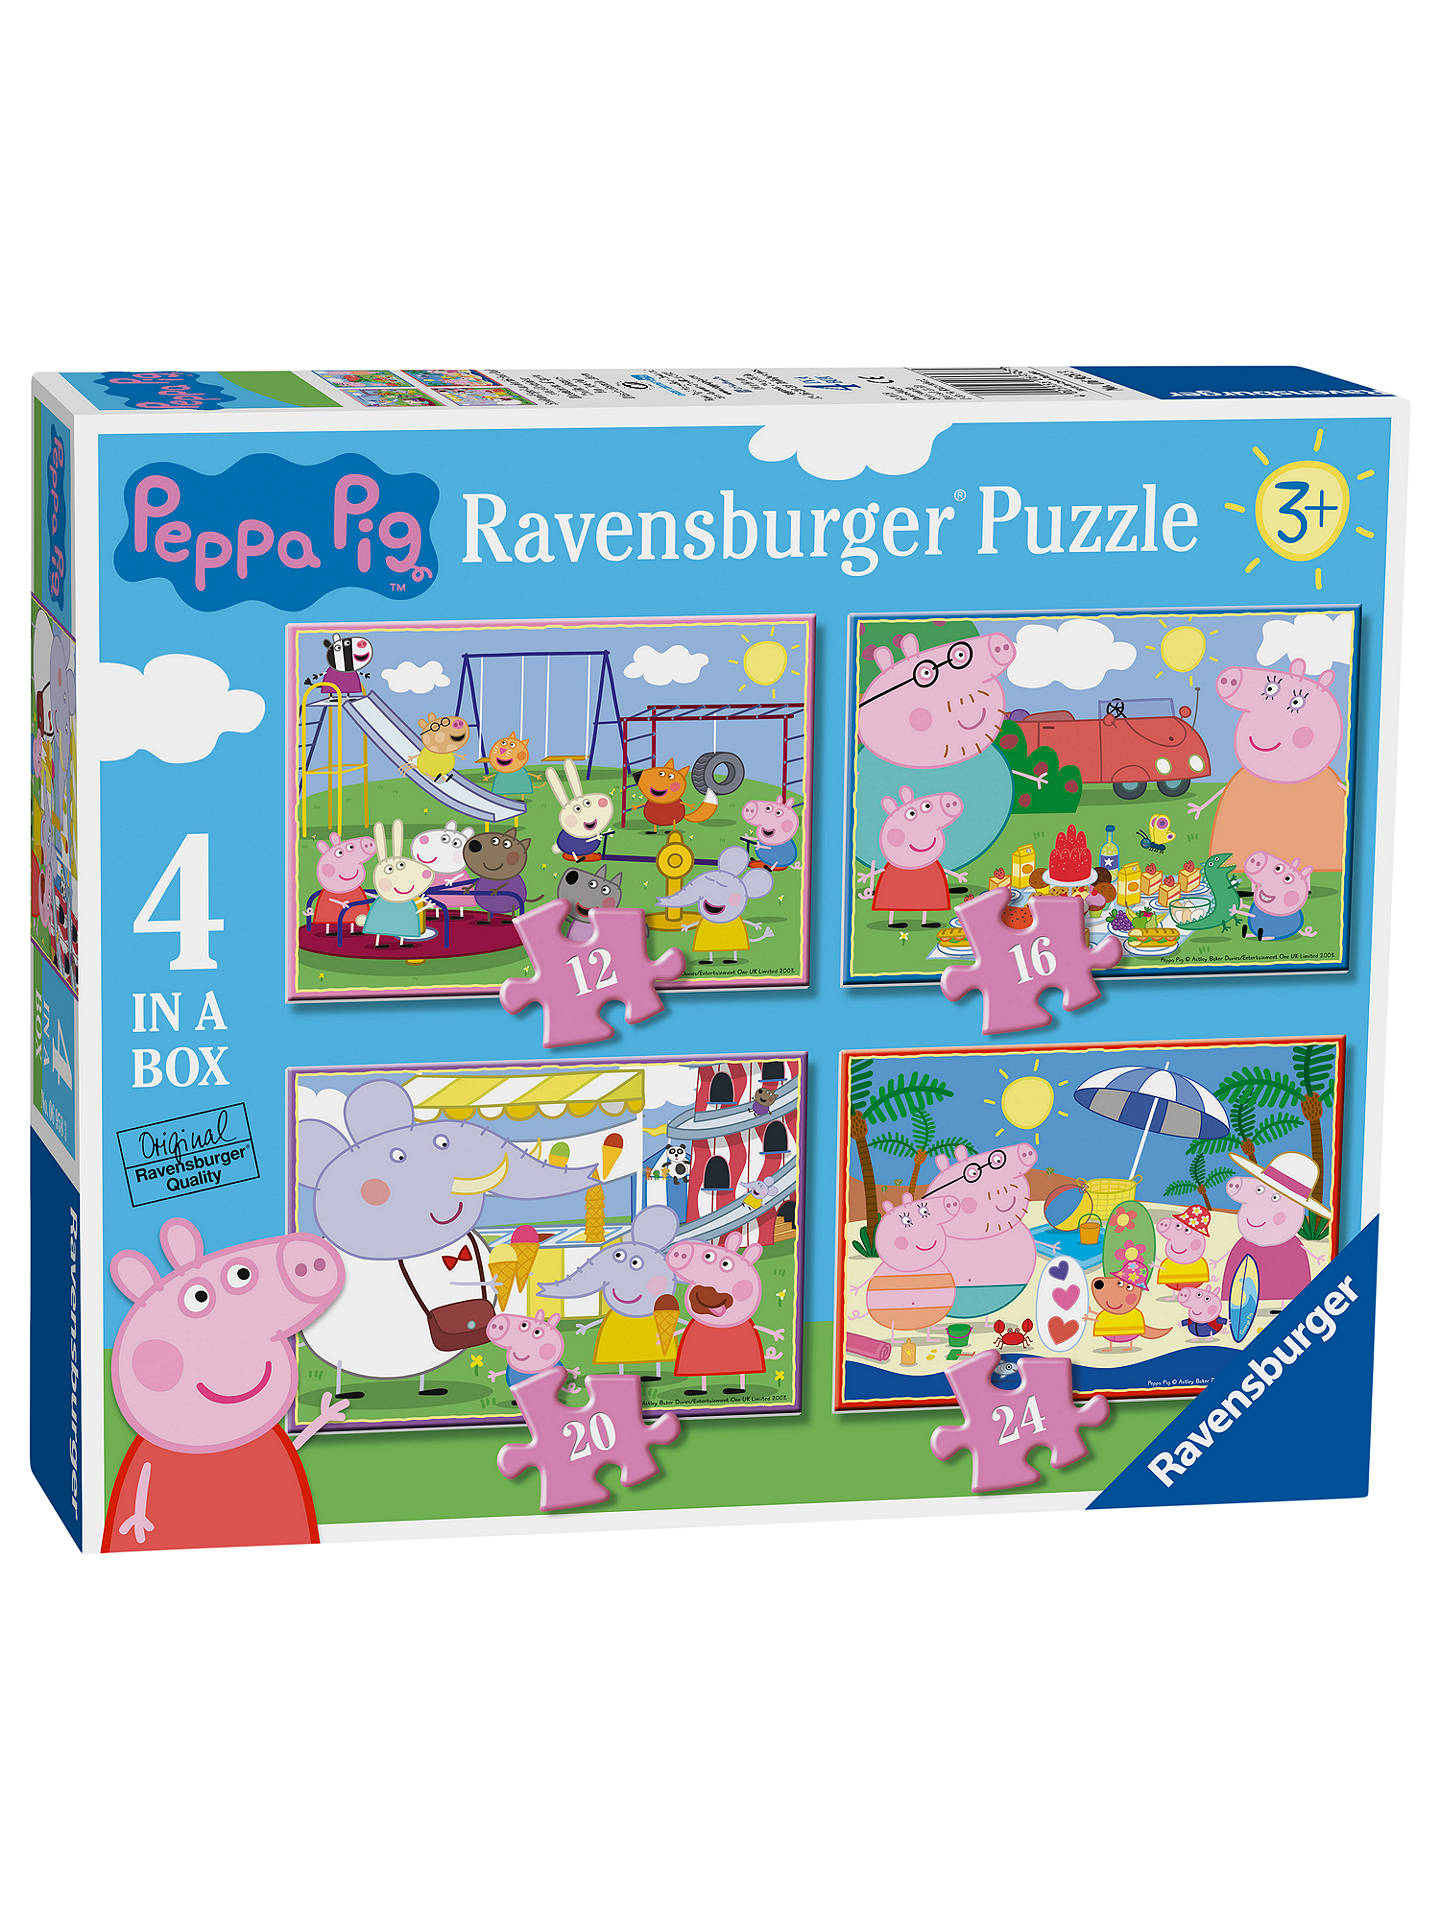 Peppa Pig Ravensburger 4 In A Box Jigsaw Puzzle by Peppa Pig